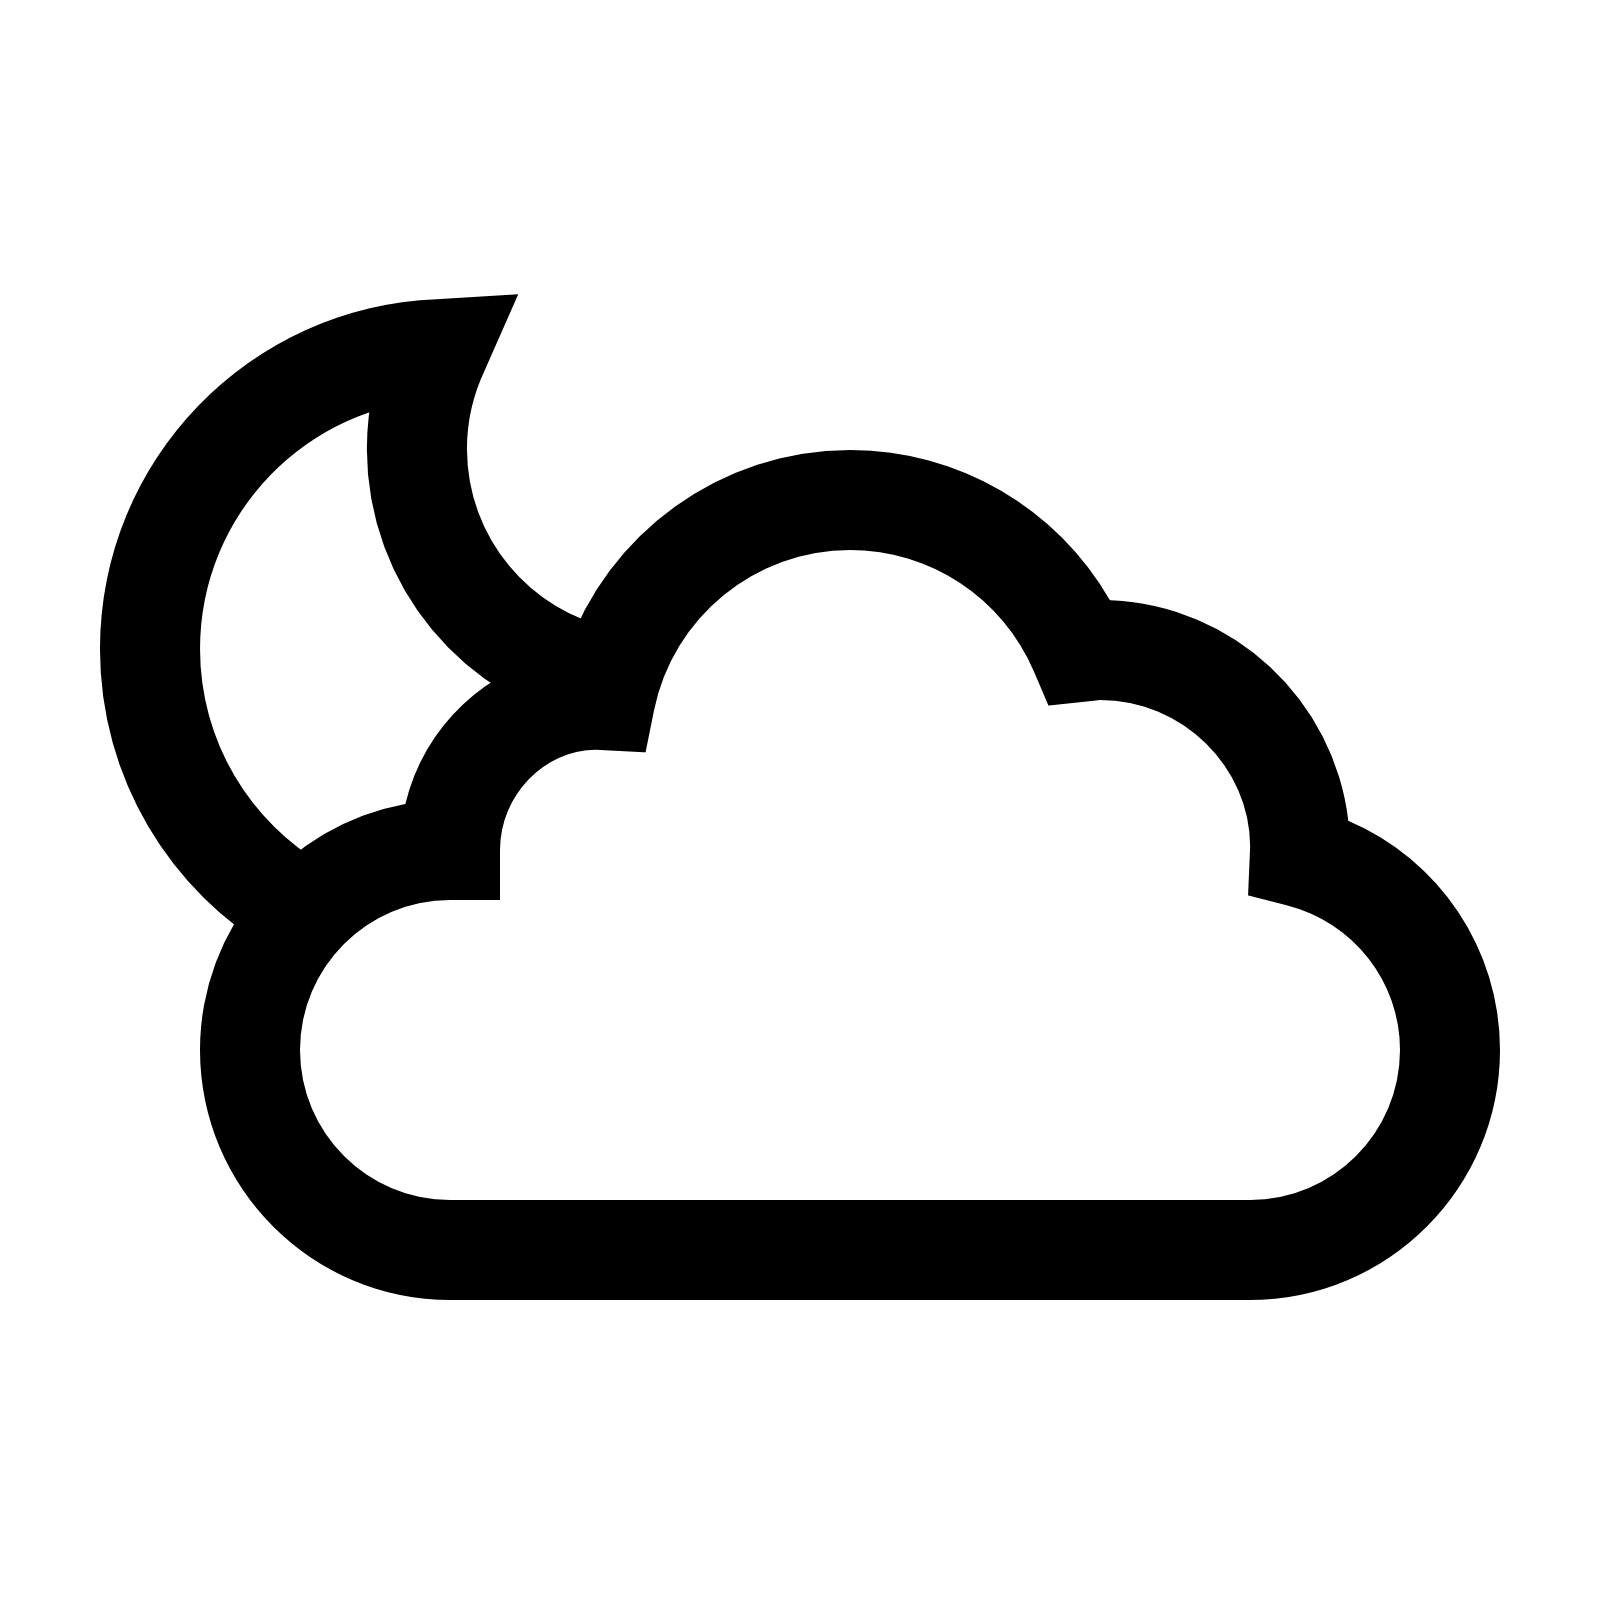 Night partly cloudy pencil. Sunny clipart clip art